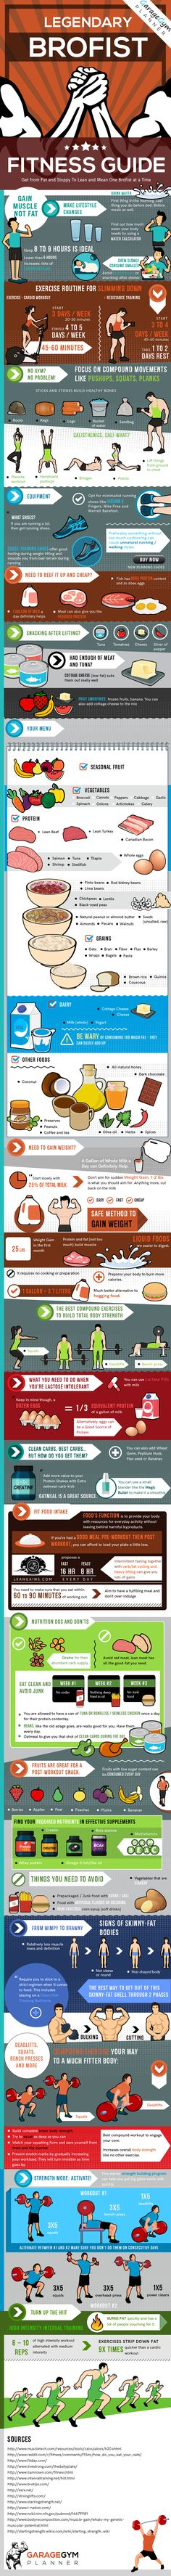 The Legendary Guide To Fitness Workouts Infographic